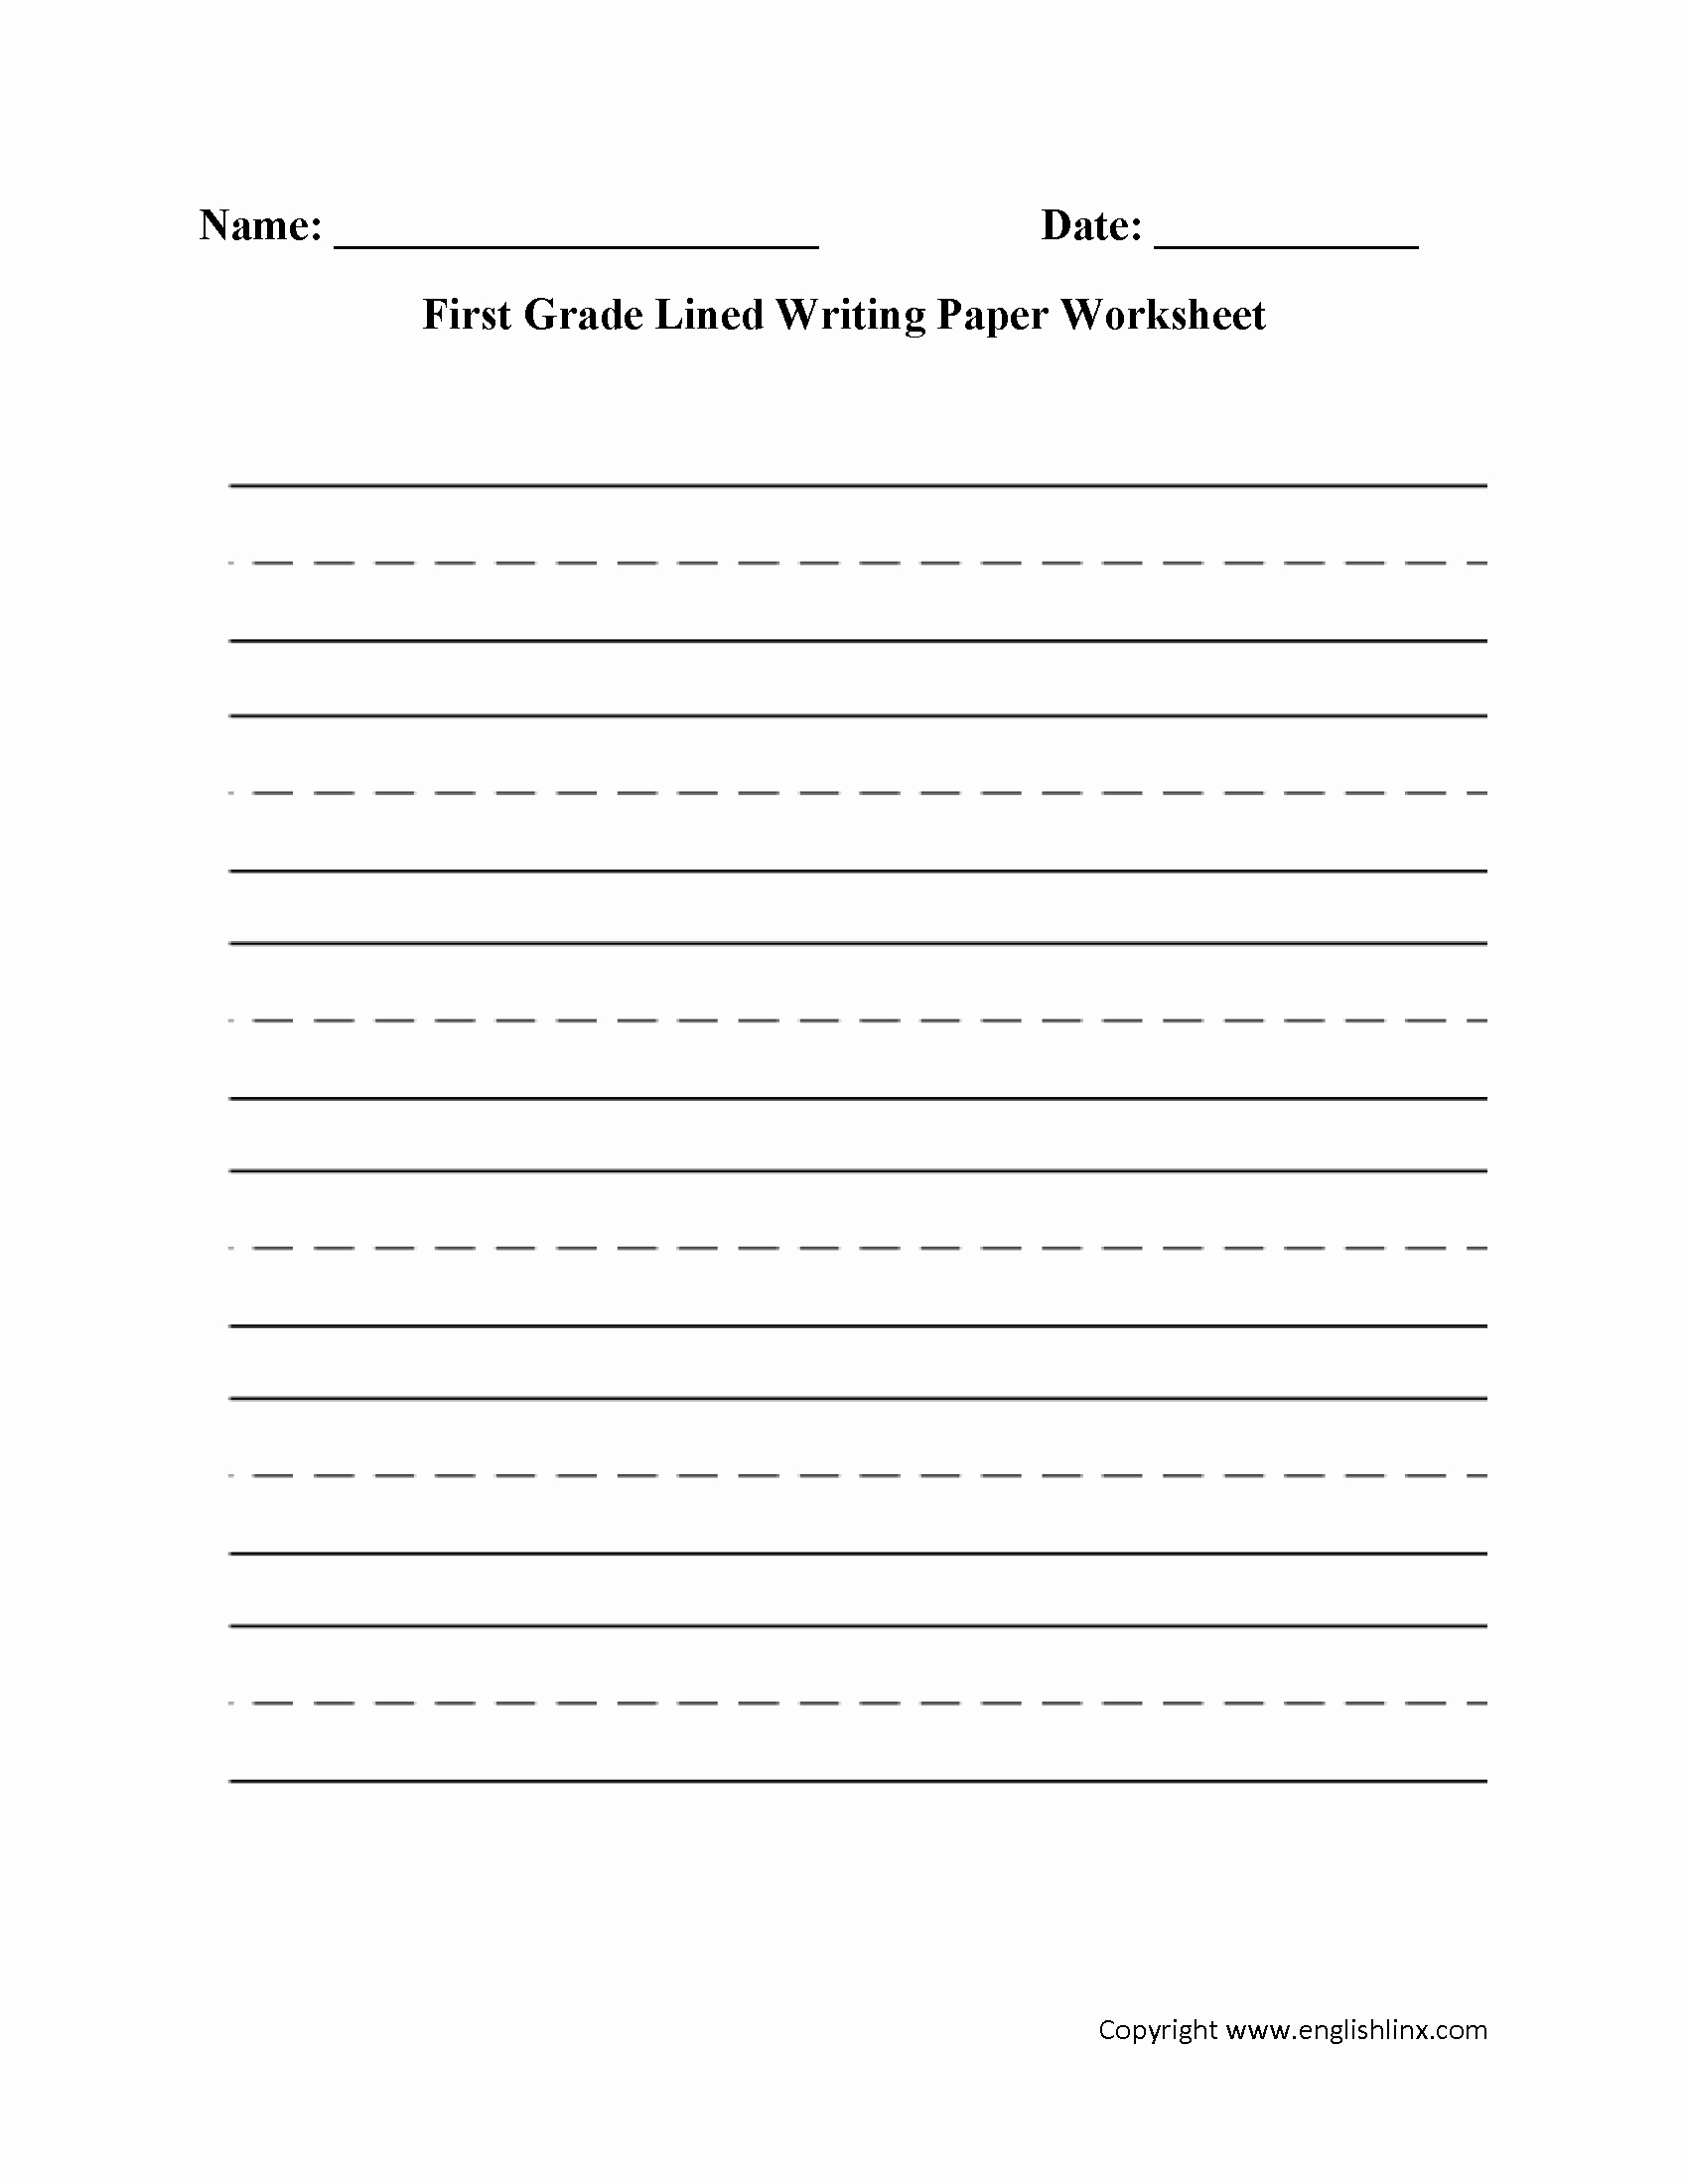 Summary Worksheets 2nd Grade Unique 2nd Grade Writing Paper Writing Worksheets for 2nd Grade